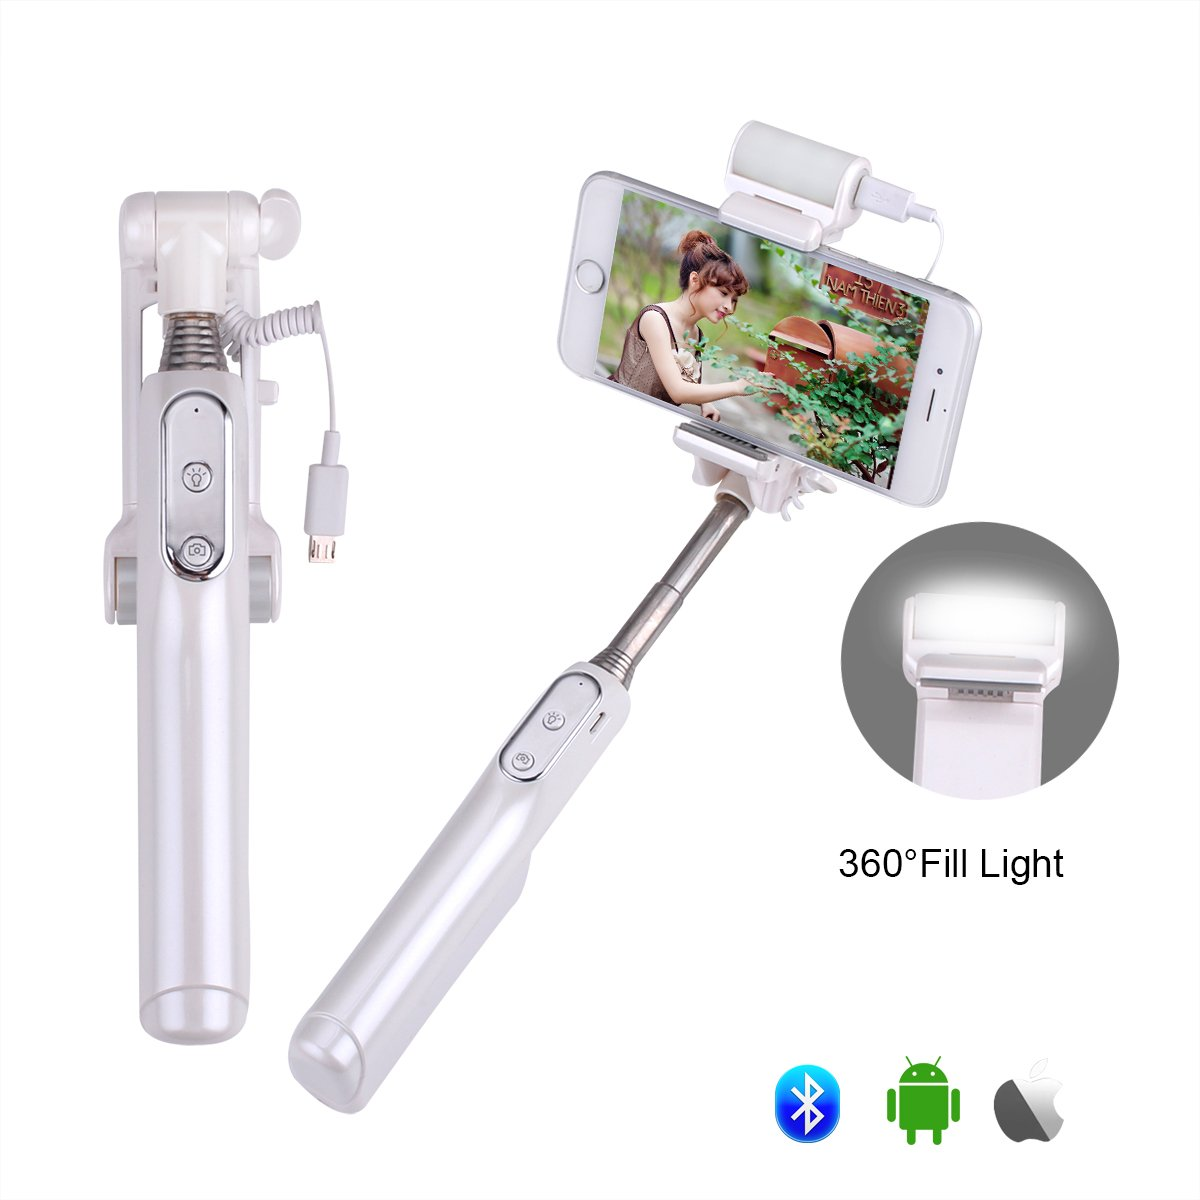 Selfie Stick, GEANOV Bluetooth Selfie Stick with 360 Degree Led Fill Light and Mirror, for iPhones, Samsung Galaxy s7 edge/s4 and more Android System Phones (A6-White)